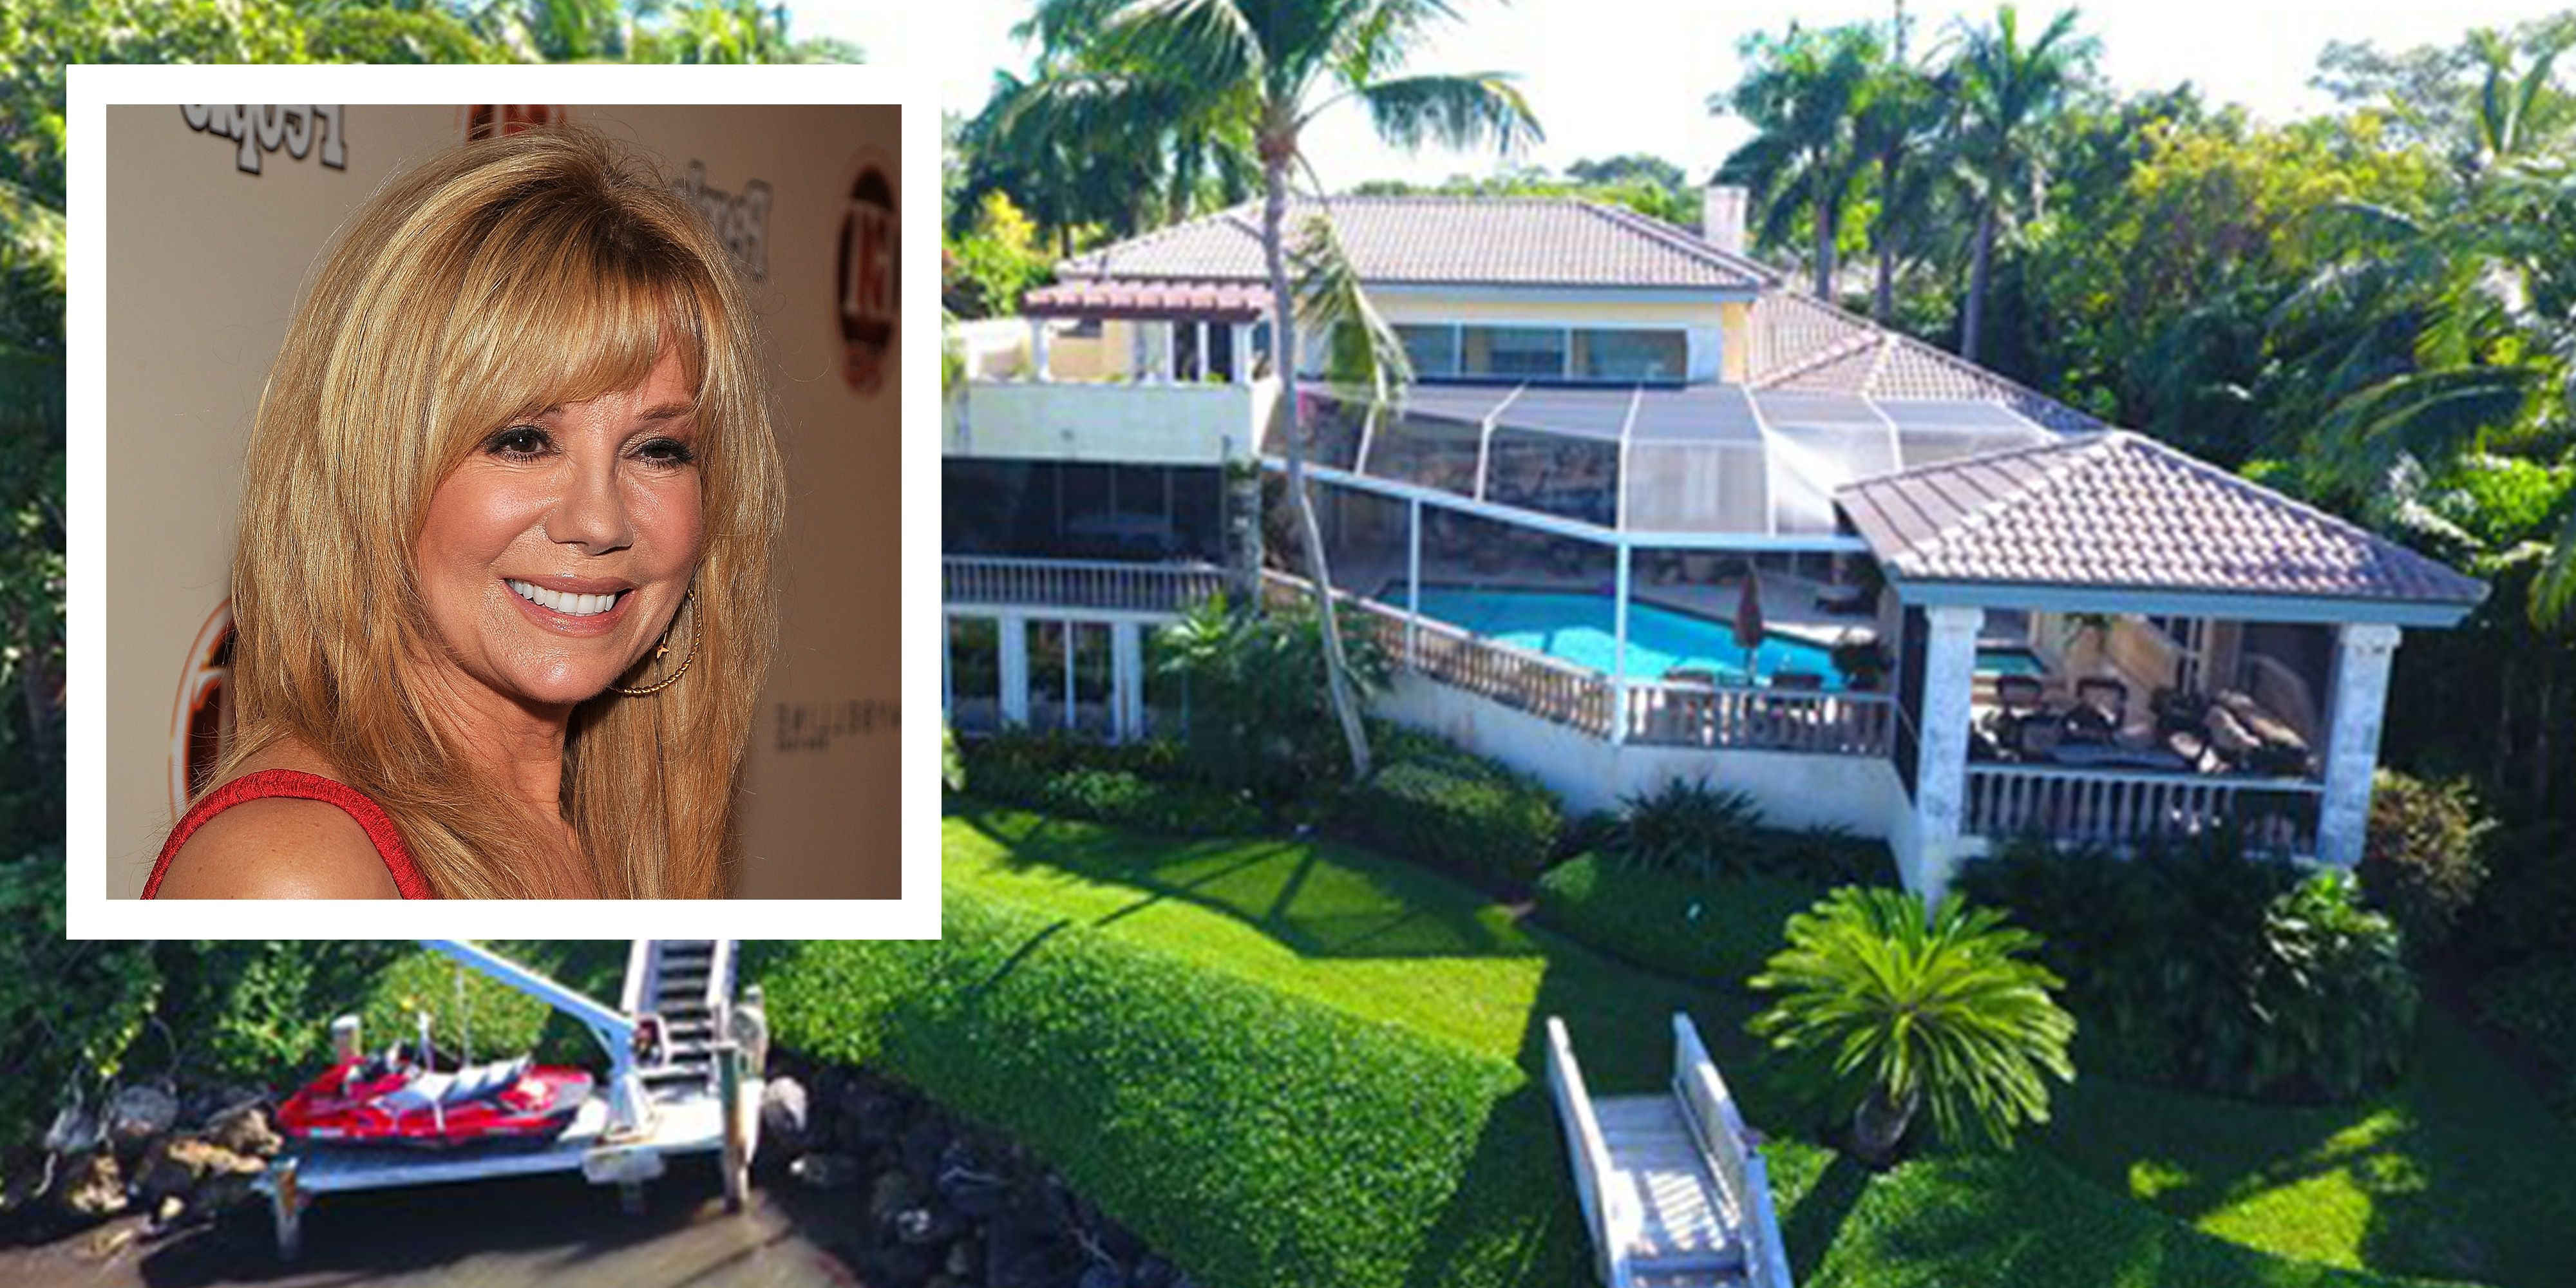 House On Hooter Hill kathie lee gifford florida keys house for sale - kathie lee